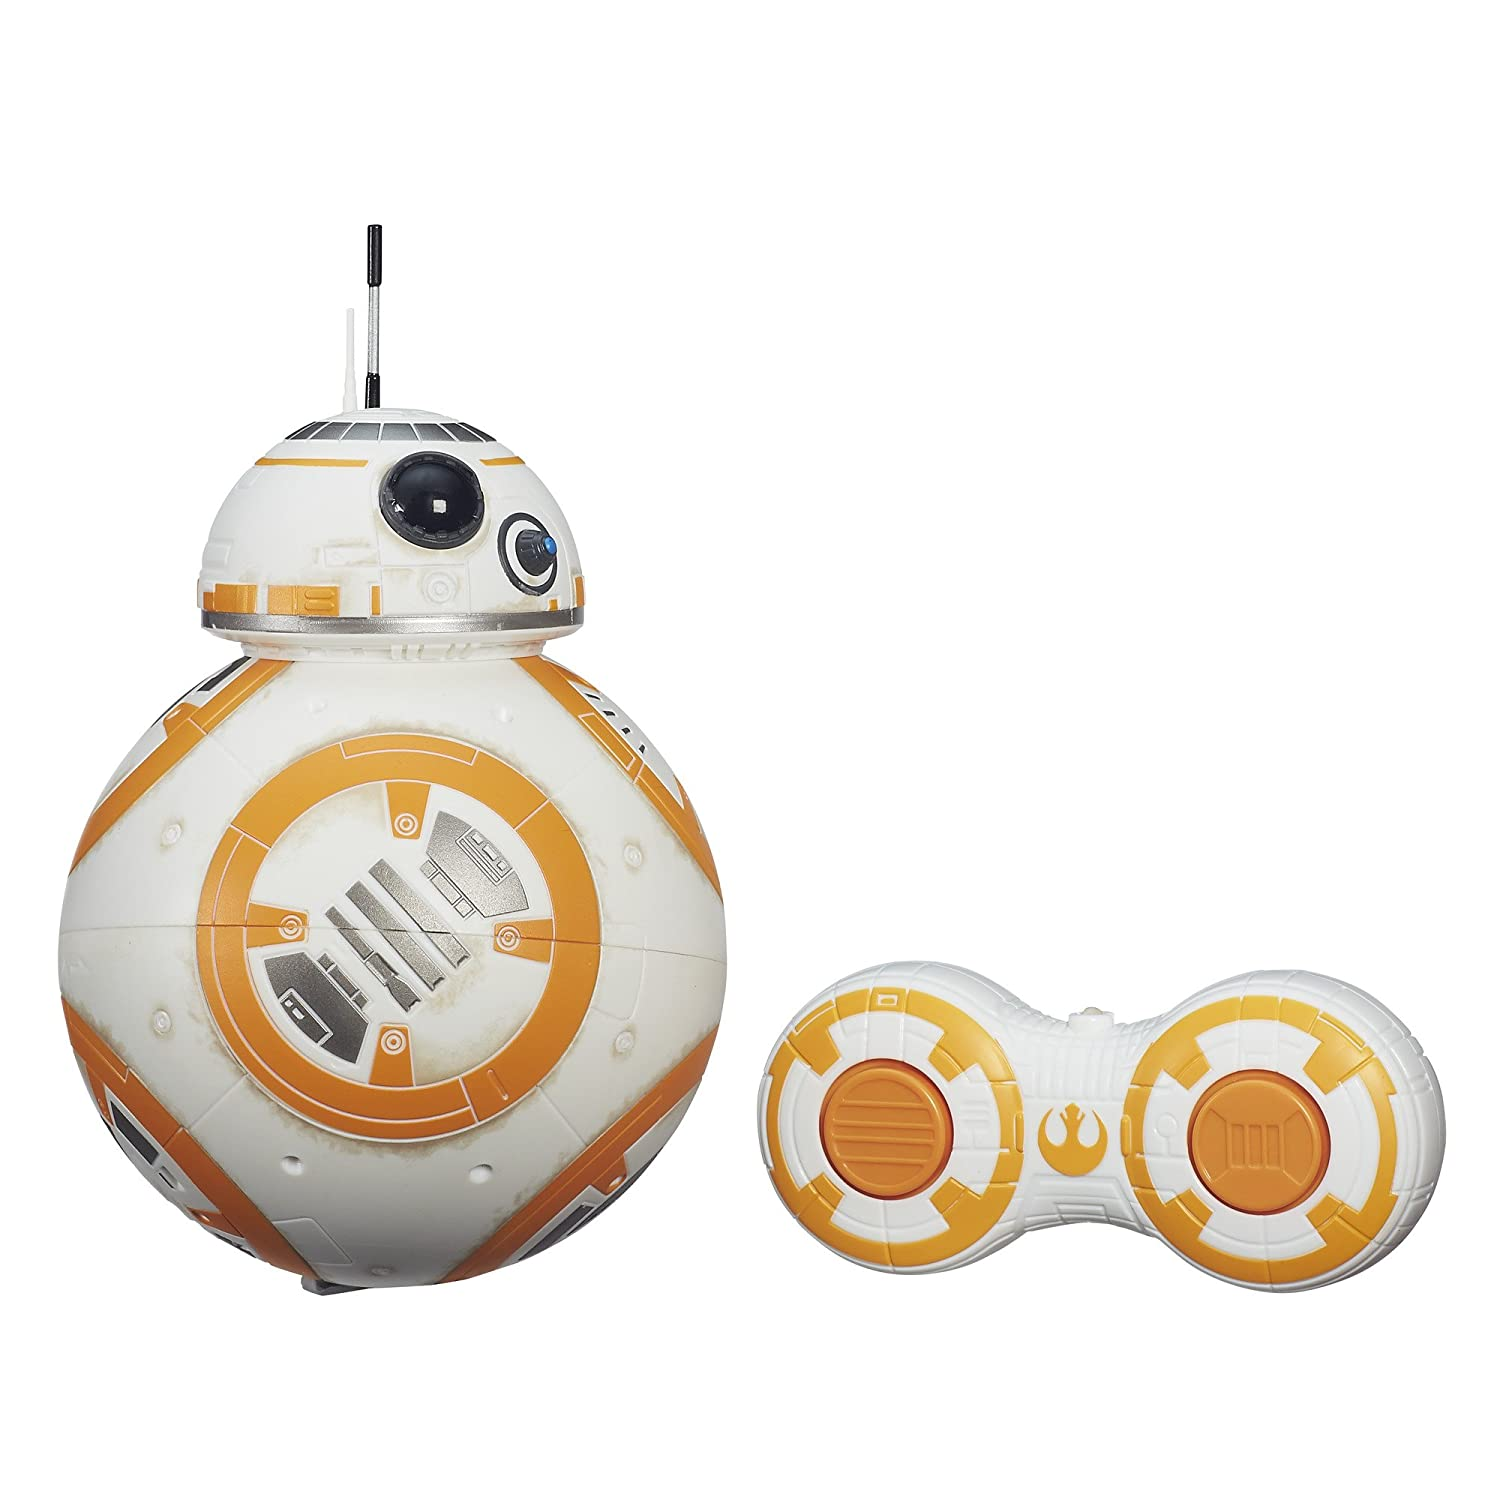 7 Best Remote Control BB8 Robot Toys Reviews of 2021 12